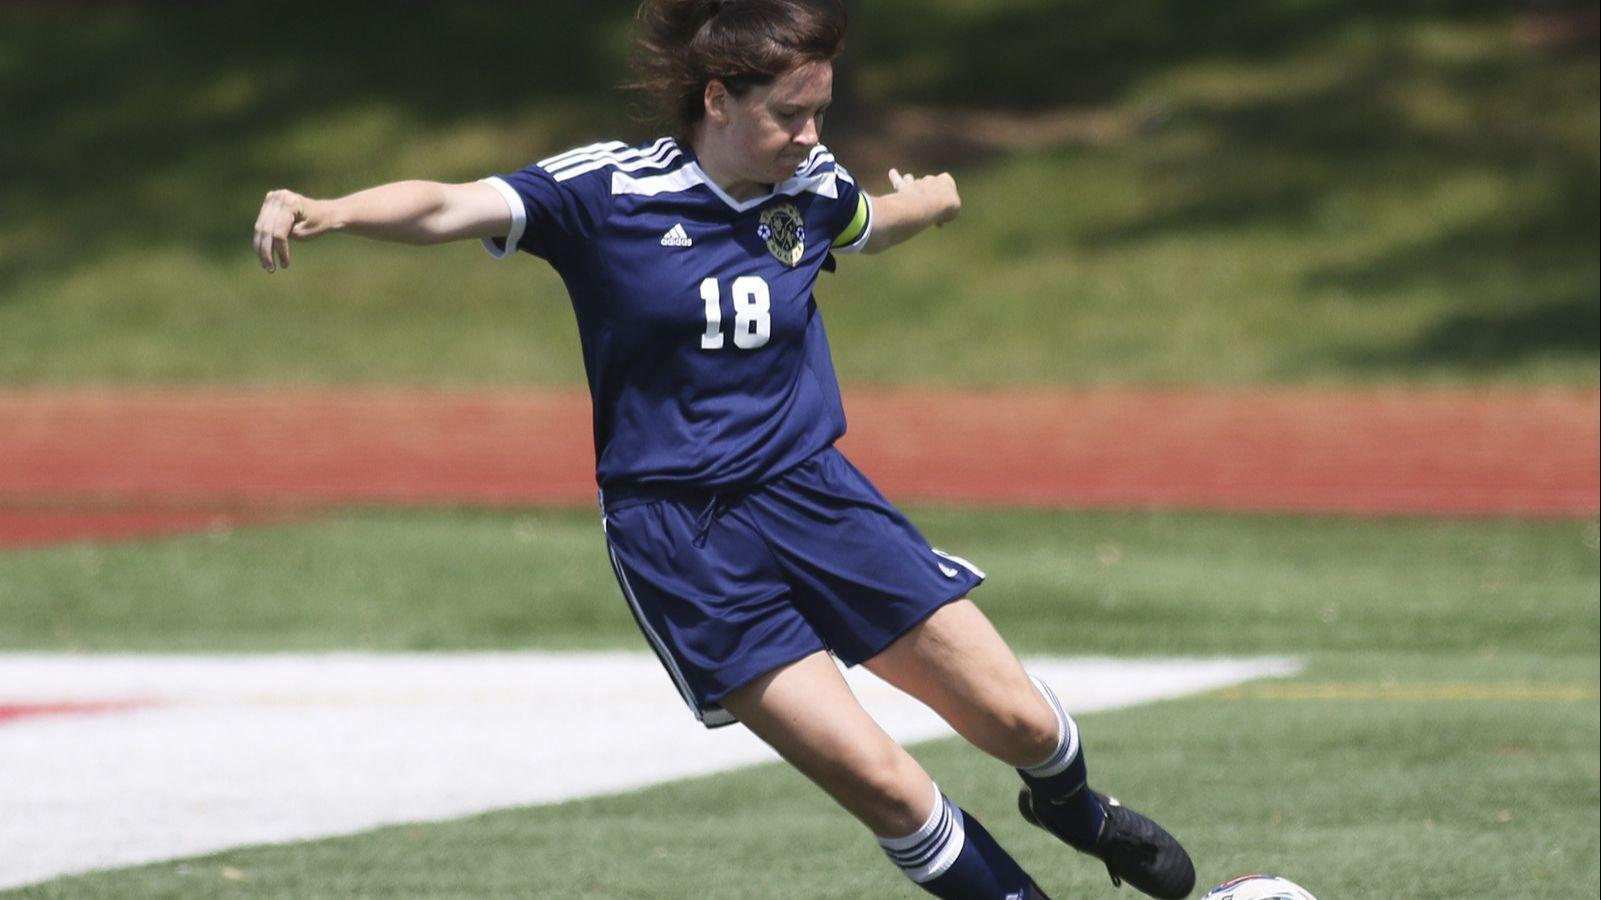 Ct-sta-spt-girls-soccer-lemont-mairead-ruane-st-0614